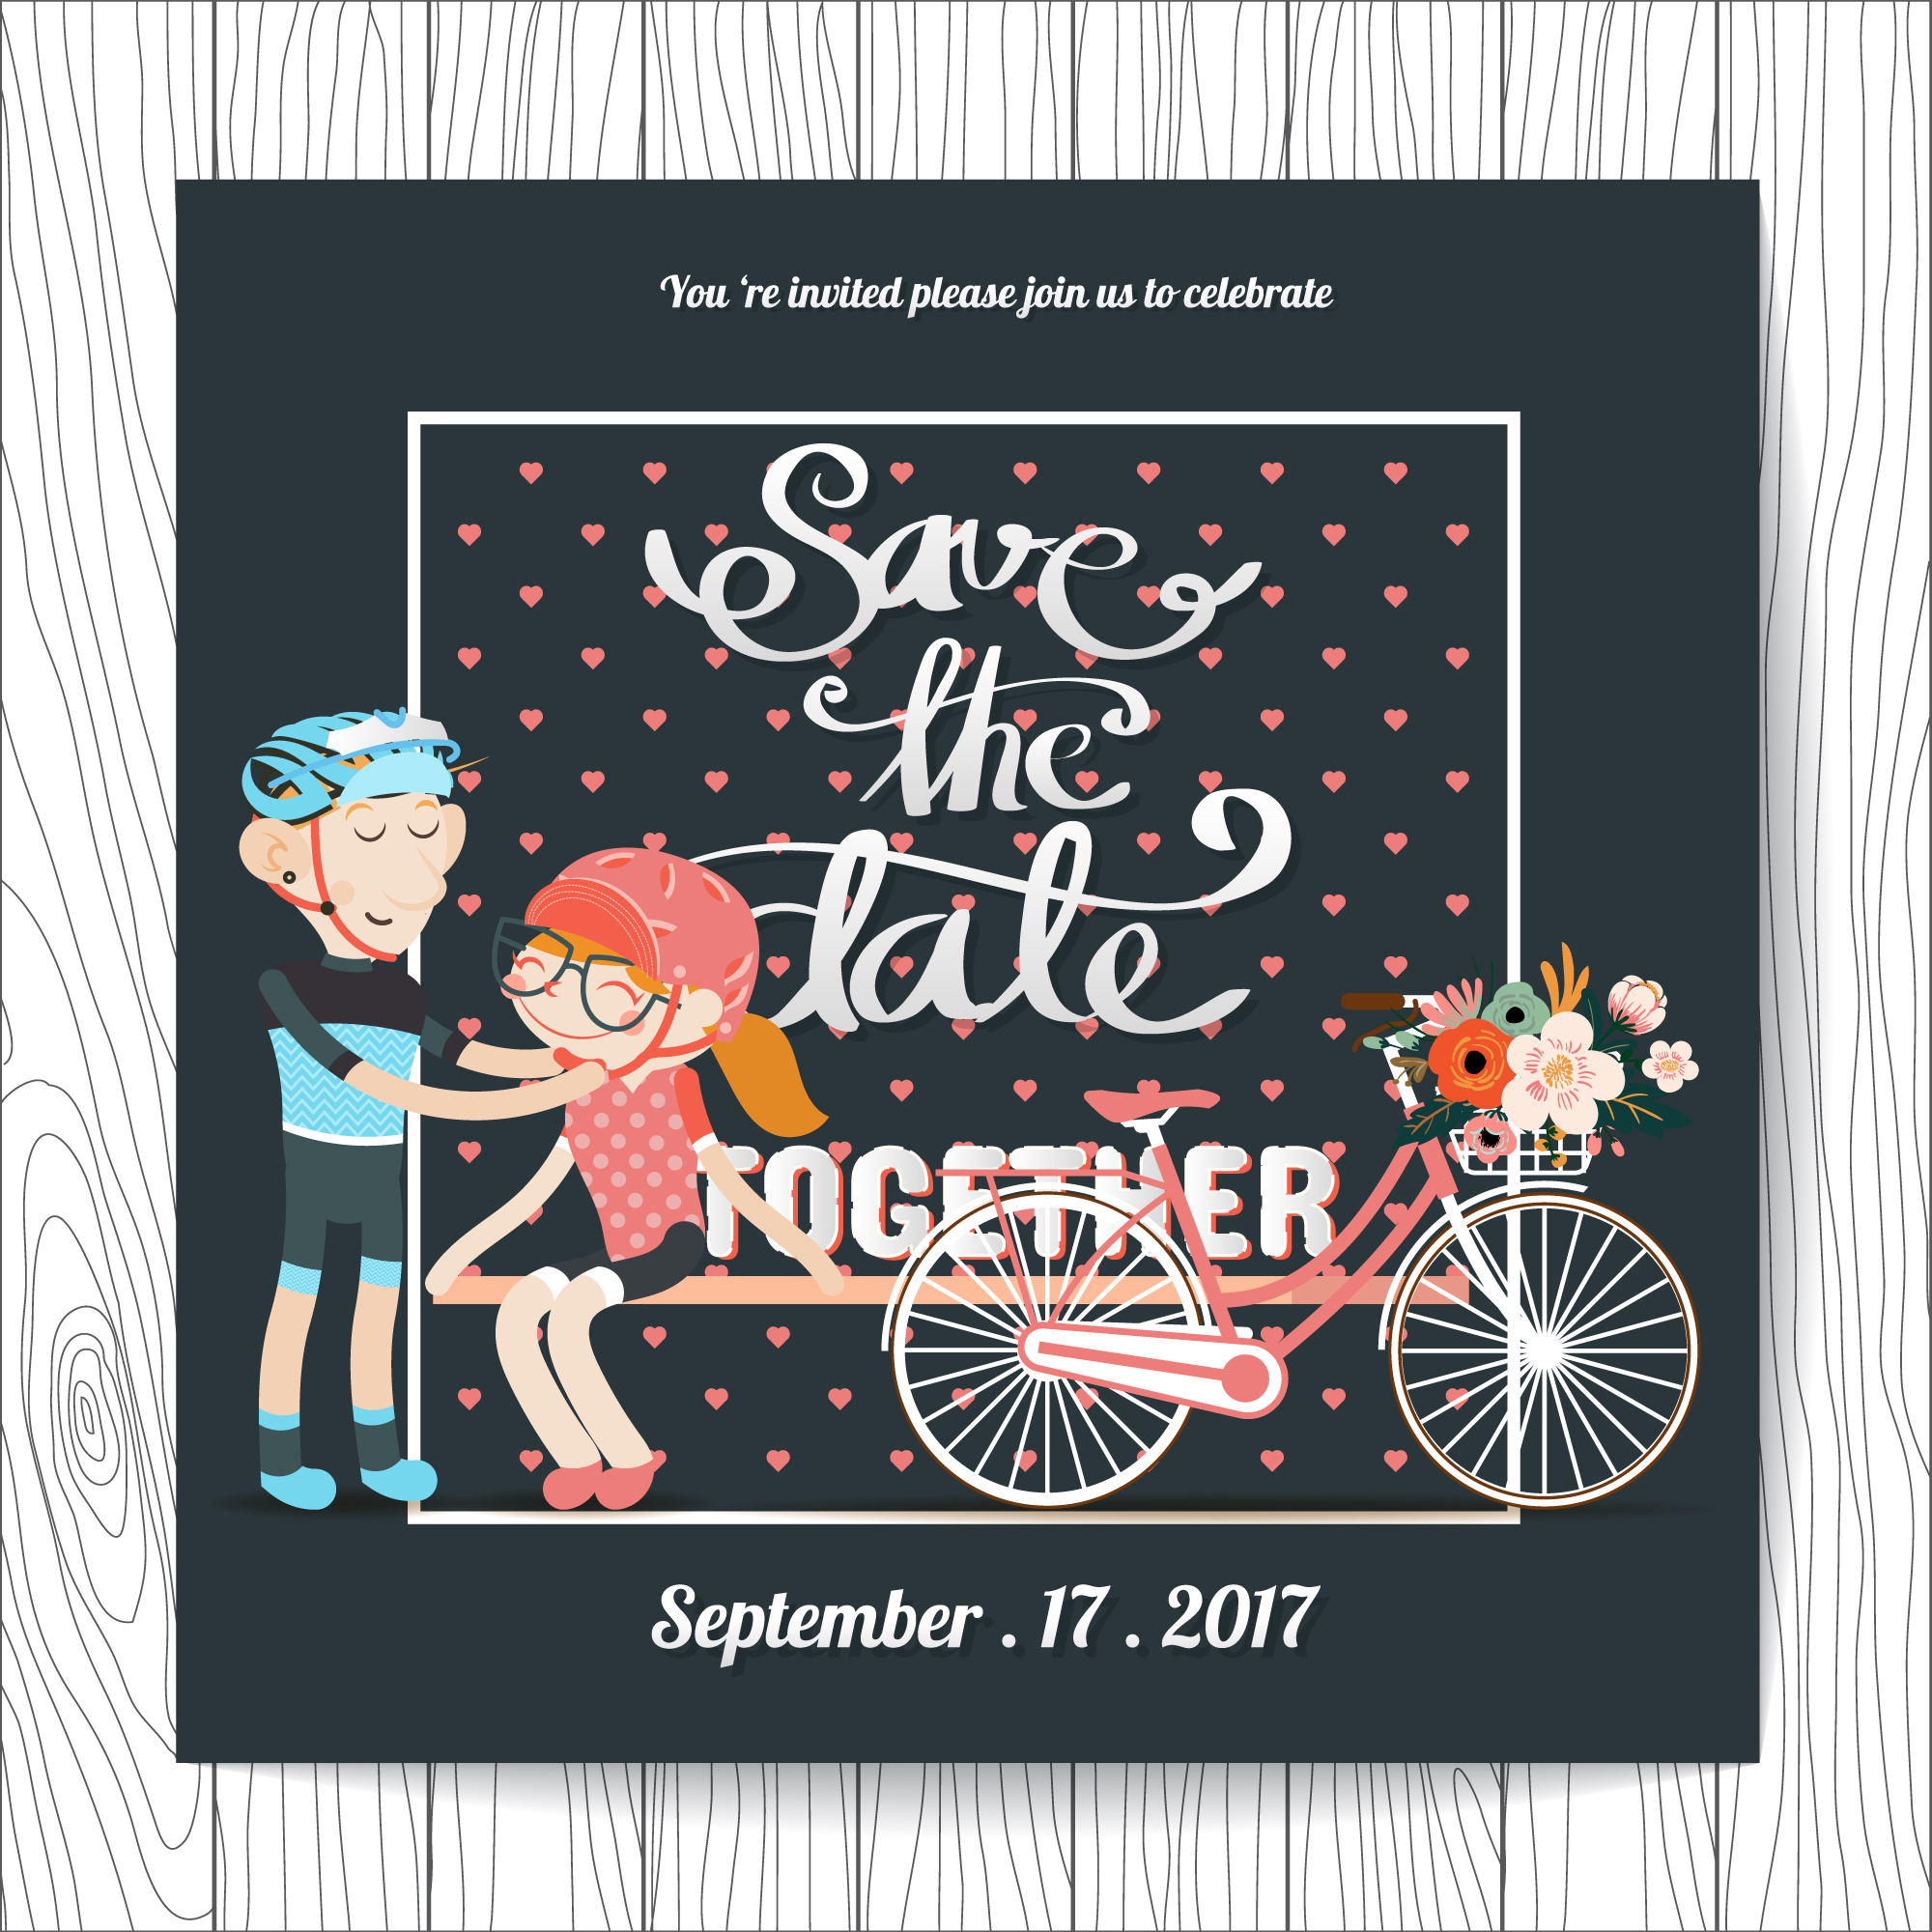 Wedding invitation with cycling design